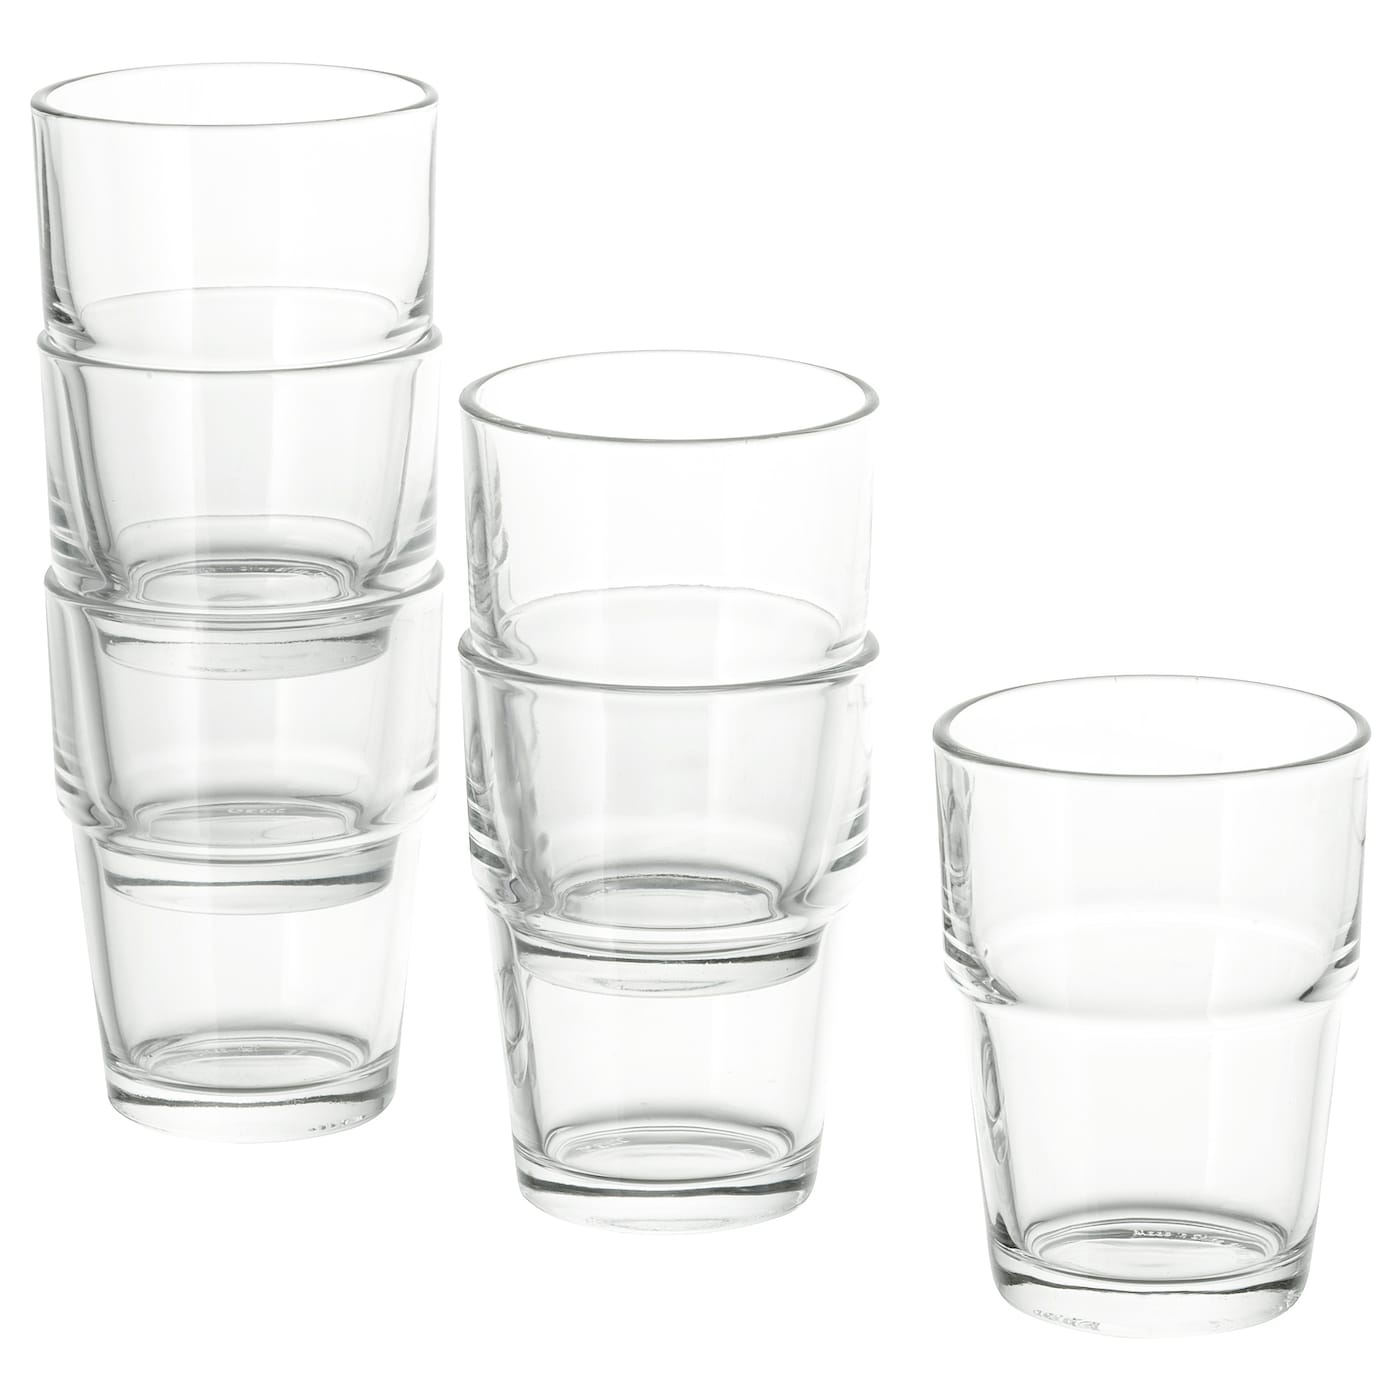 IKEA REKO glass Can be stacked inside one another to save space in your cabinets when not in use.